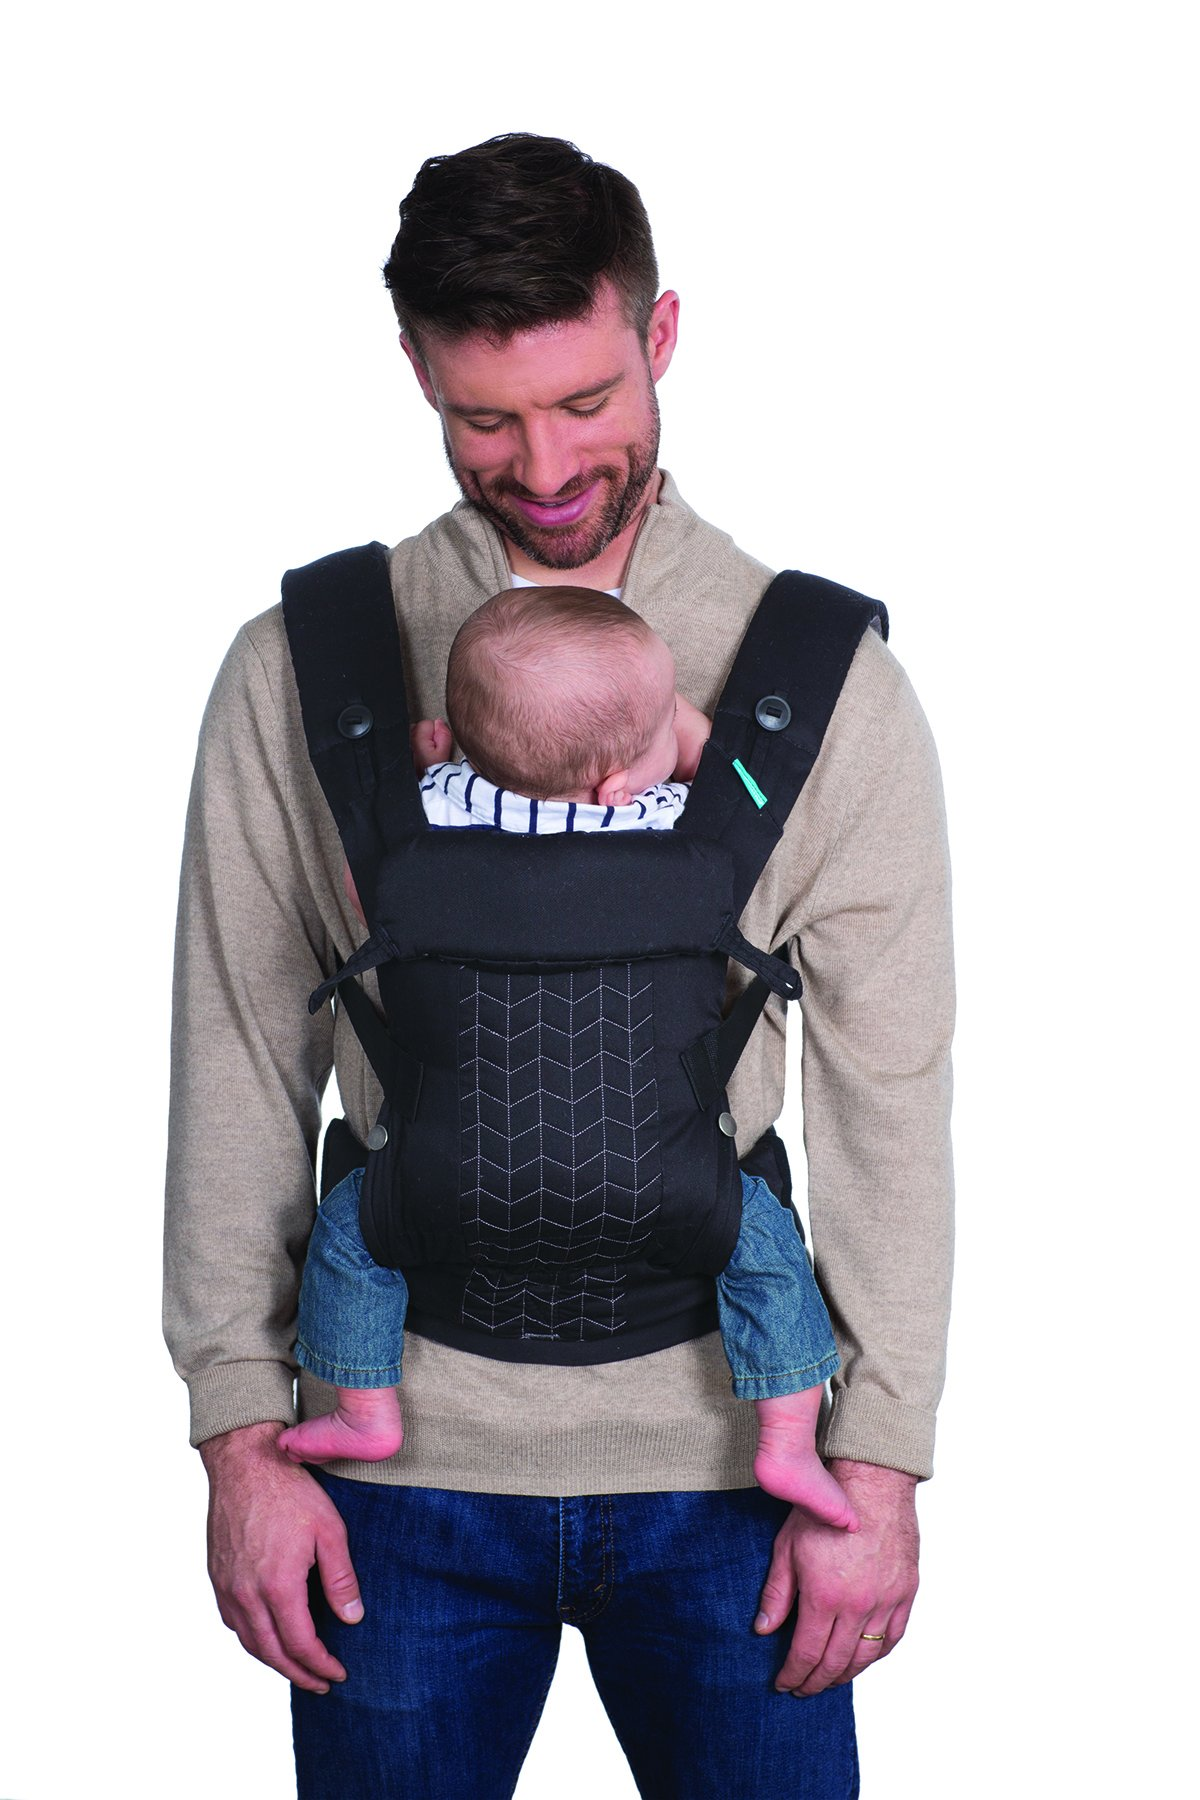 Infantino Upscale Carrier, Black, One Size Infantino Fully safety tested 4 way carrier Facing in newborn & m position 4